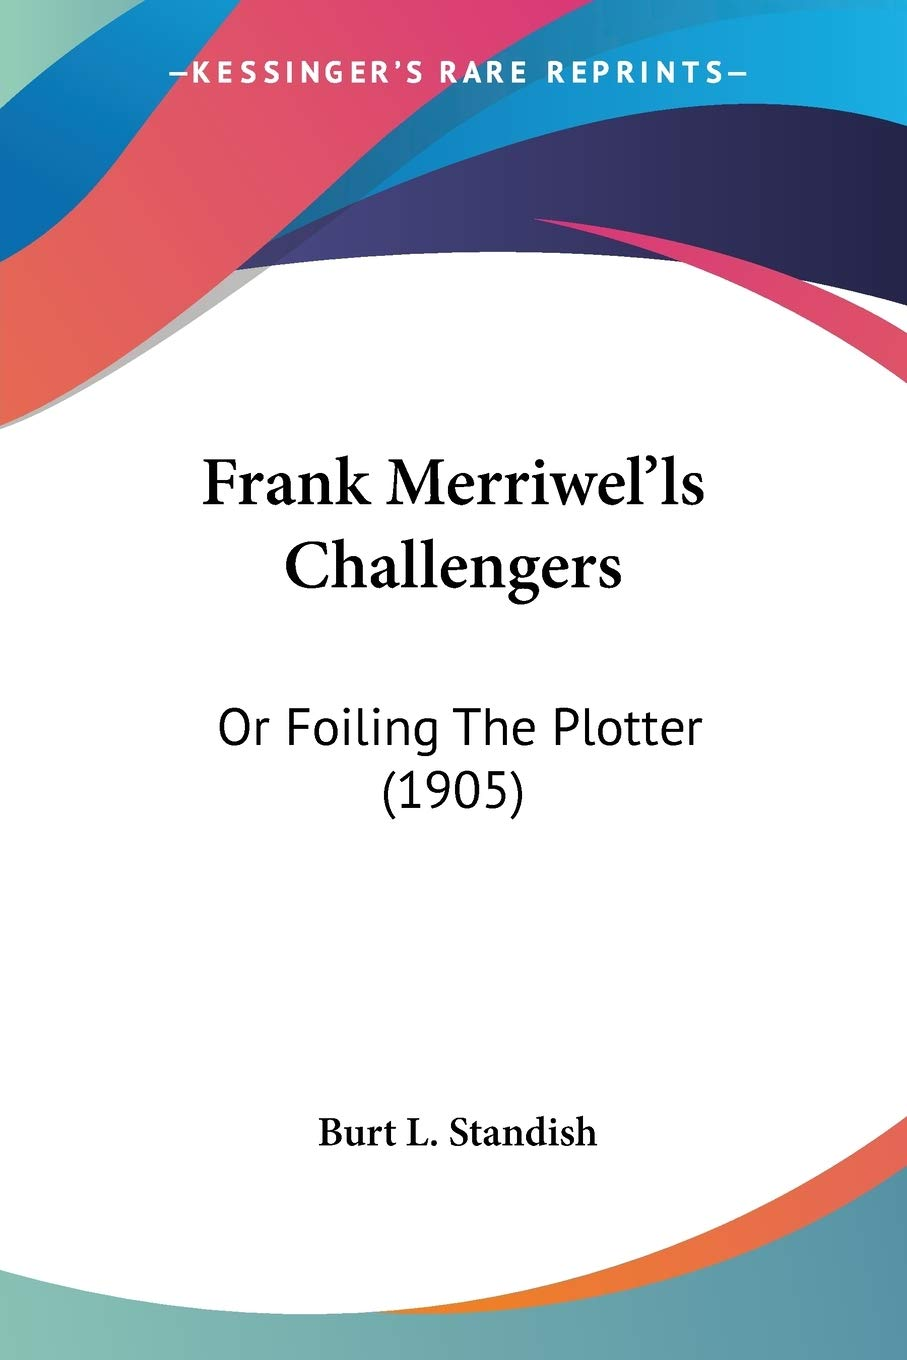 Frank Merriwells Challengers: Or Foiling the Plotter 1905: Amazon ...